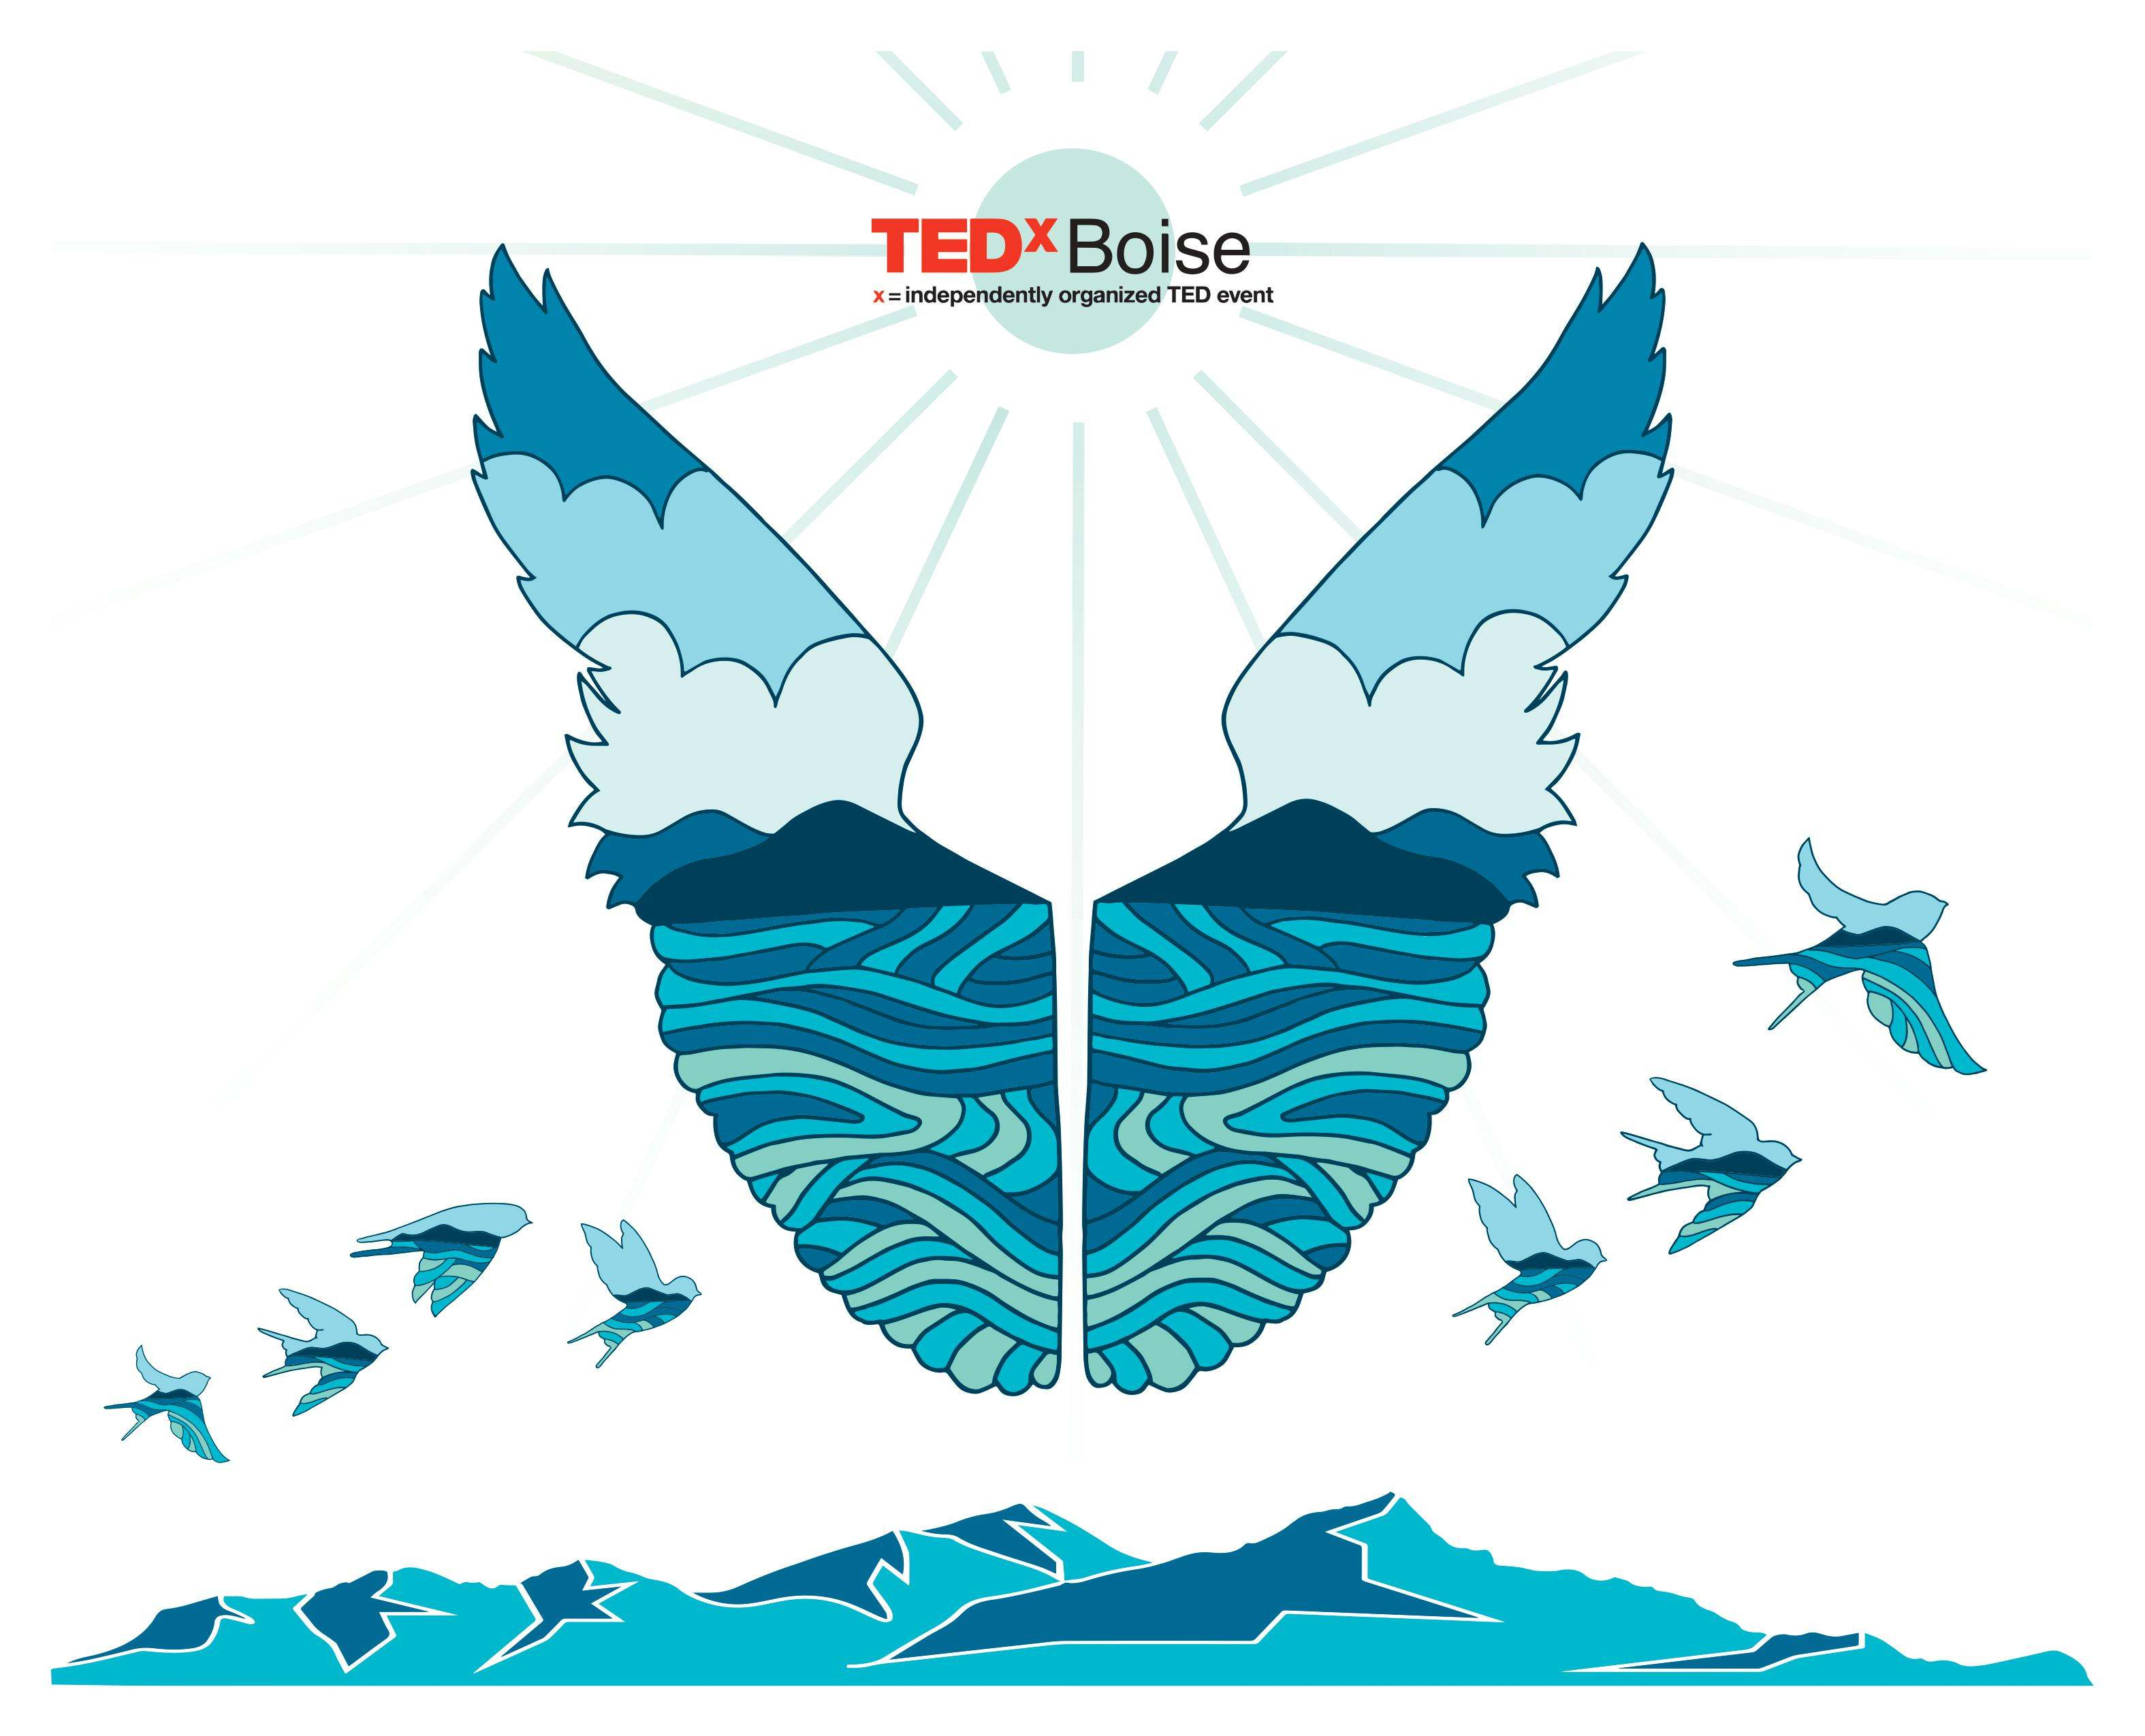 A design by Riley Helal depicting a design in the shape of flying wings with the TEDxBoise logo above it.